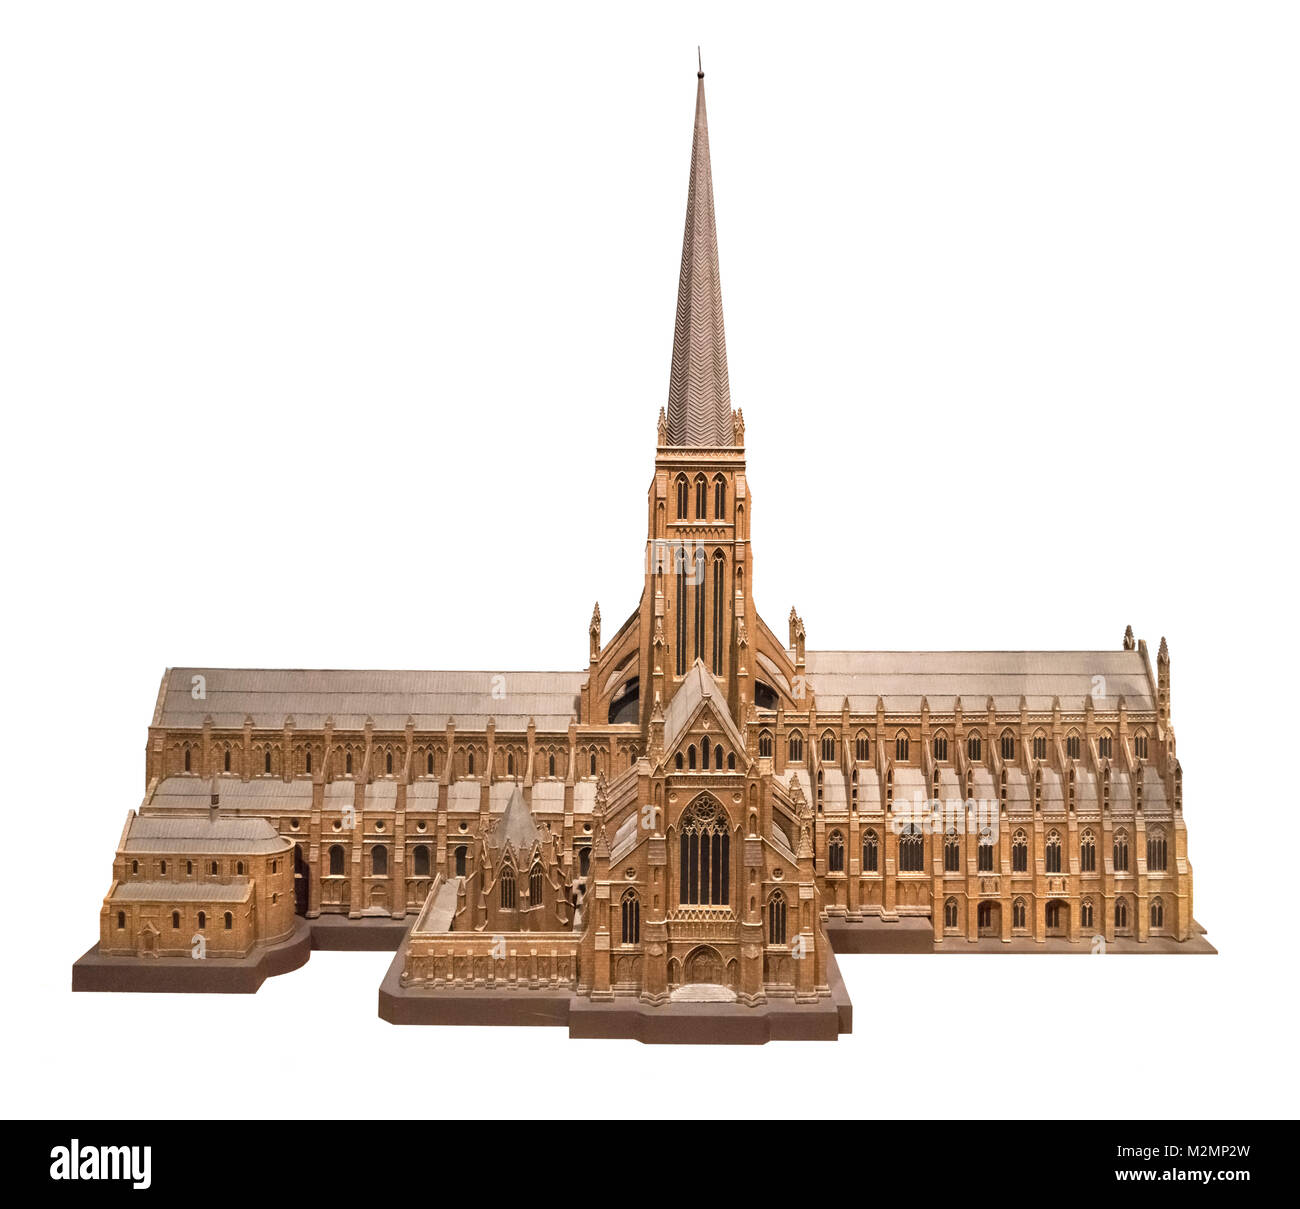 Model of Old St Paul's Cathedral, London, which was completed in 1320 and destroyed in the Great Fire of London - Stock Image